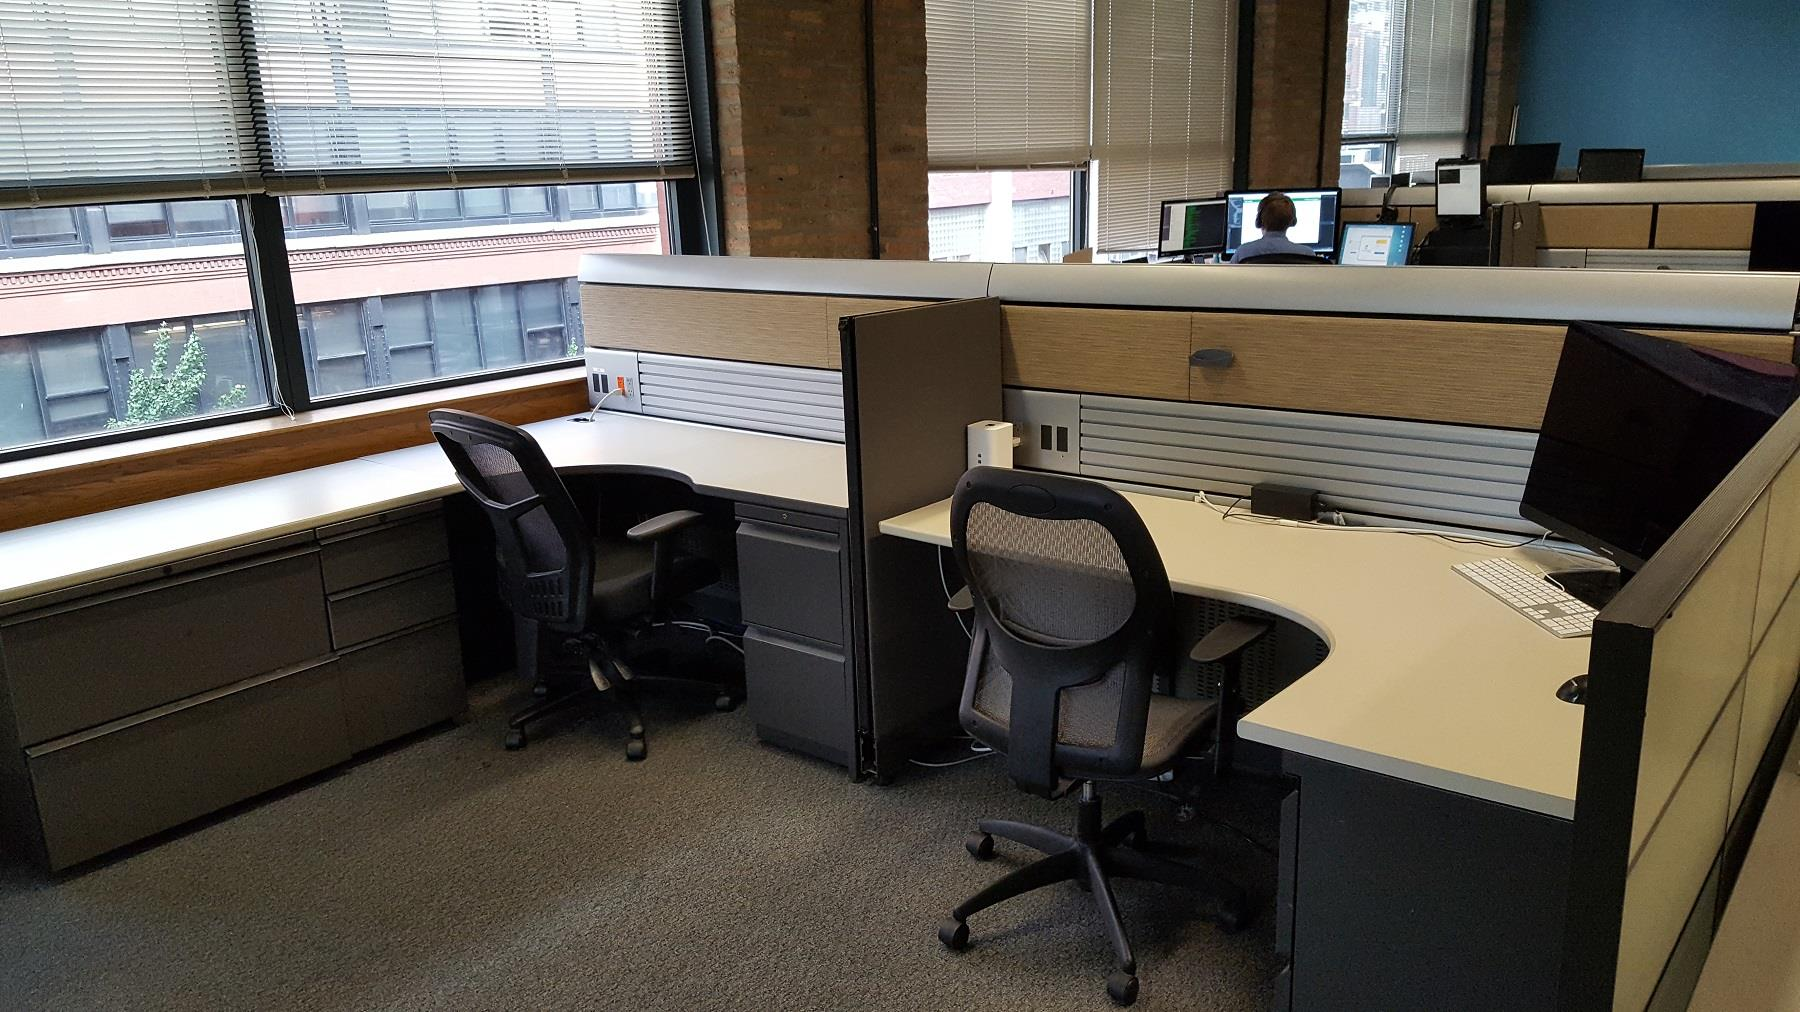 ClairVista - Four Spacious Desks in Shared Office